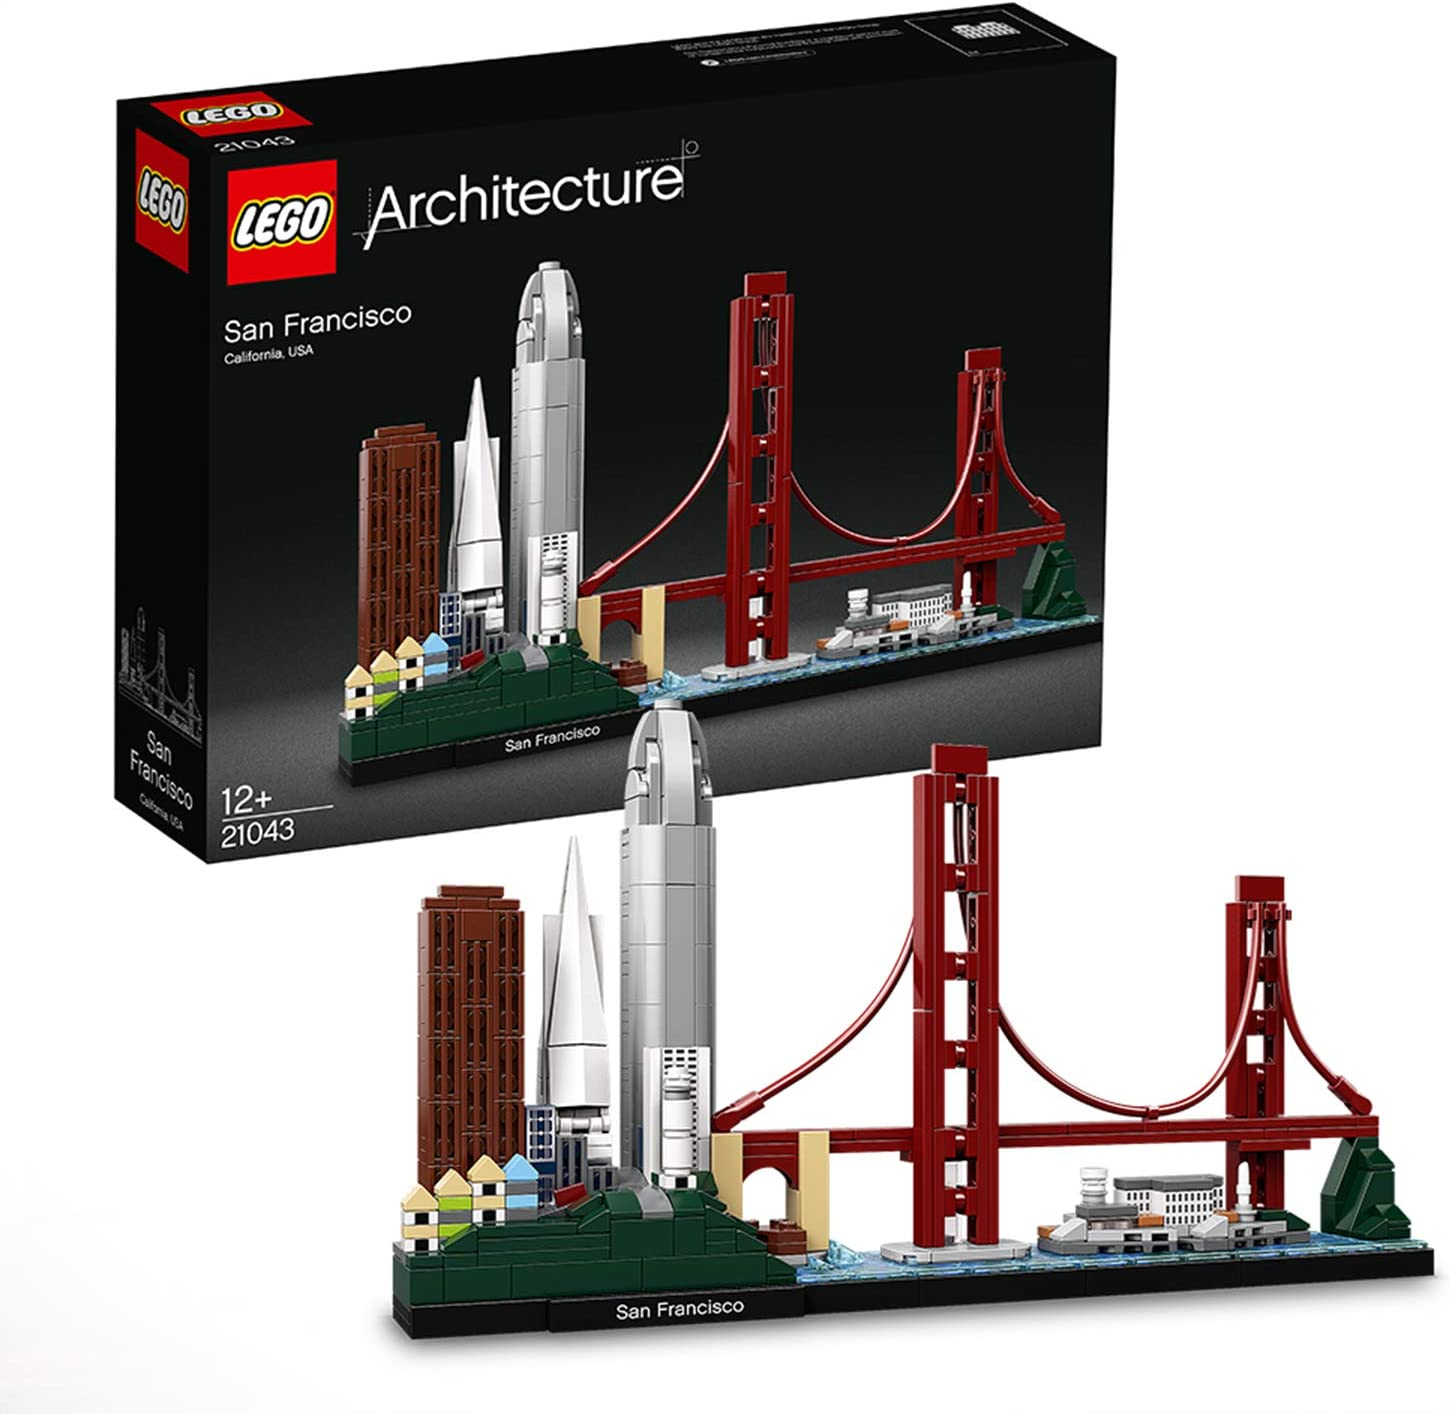 LEGO 21043 Architecture San Francisco Model Building Set with ...